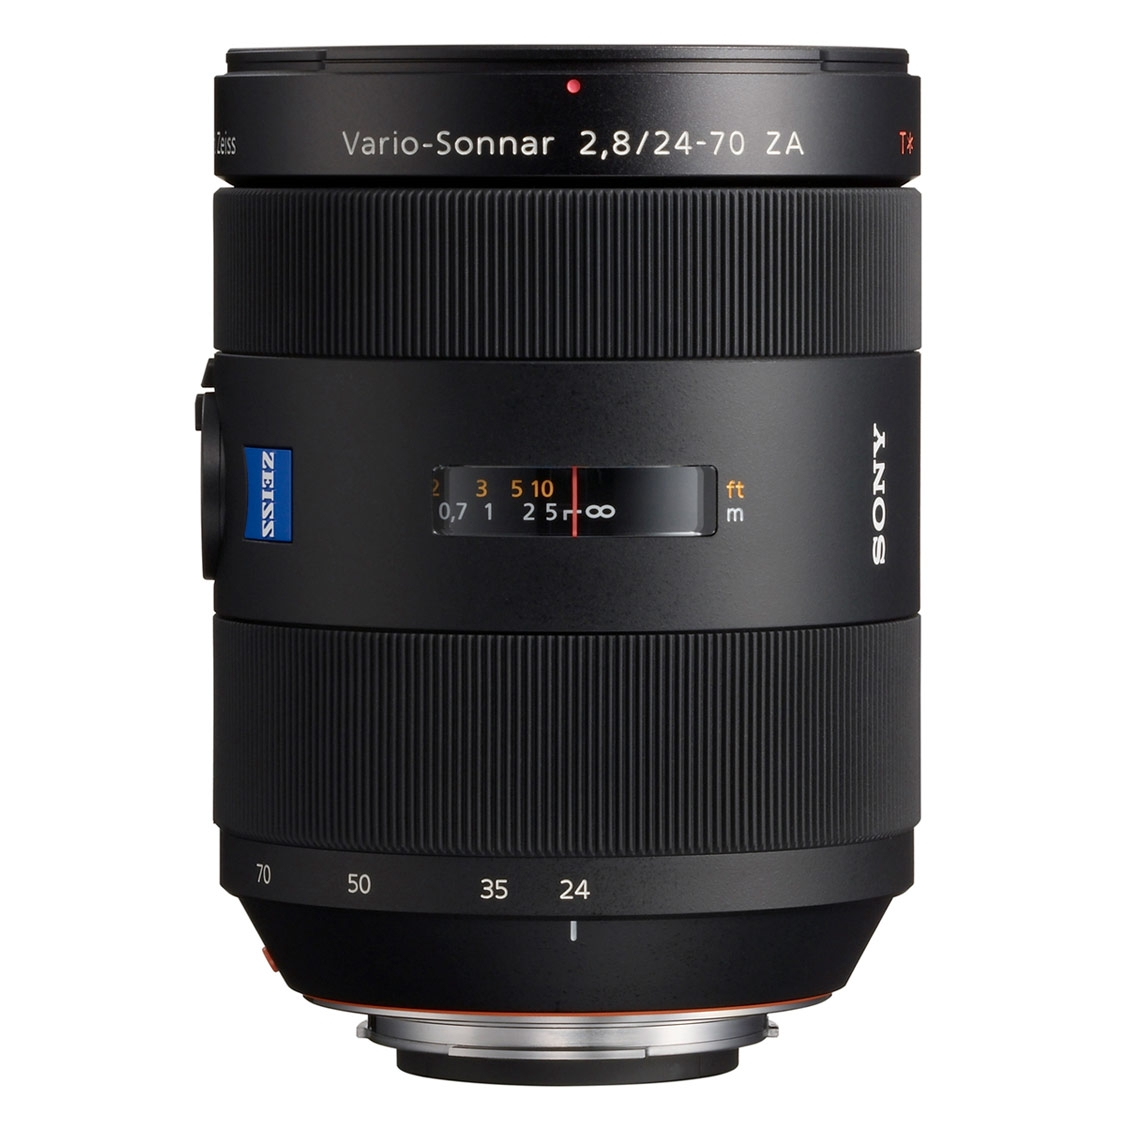 Sony 24-70mm F2.8 II Zeiss SSM Lens